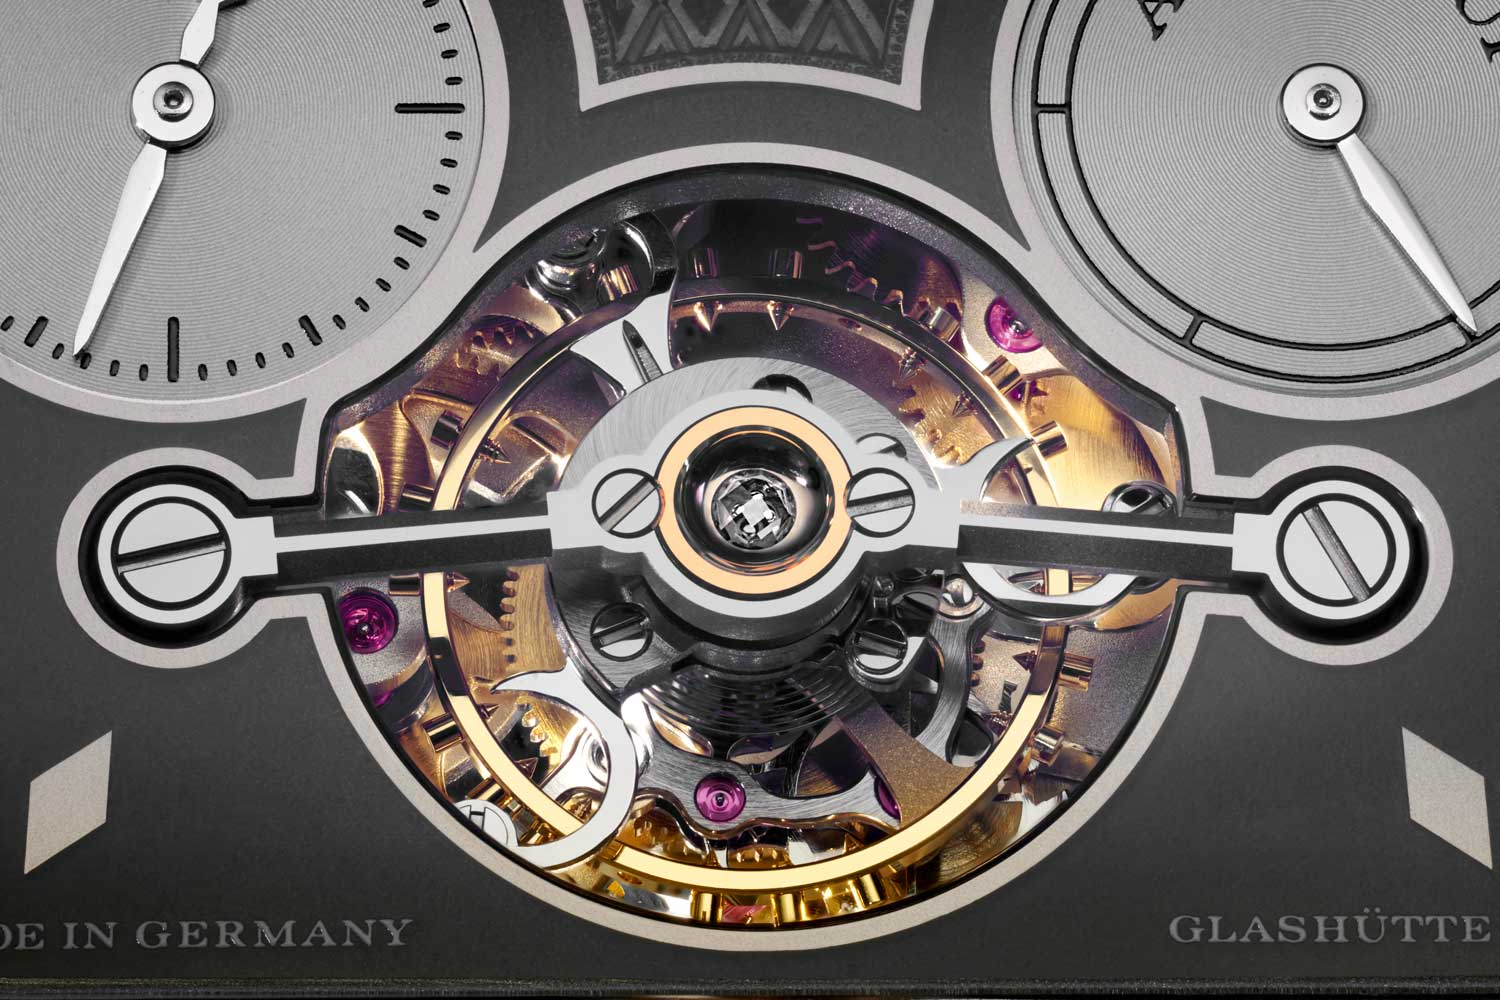 The aperture created for the subdials and the tourbillon presented the team at Lange a sizeable challenge in balancing proportions and material tolerances; the subdials are white gold and rhodium, and are inserted into the dial from the back; the endstone we see on top of the tourbillon here is a piece of diamond, there is a second one that is placed on the other end holding the tourbillon in place (©Revolution)